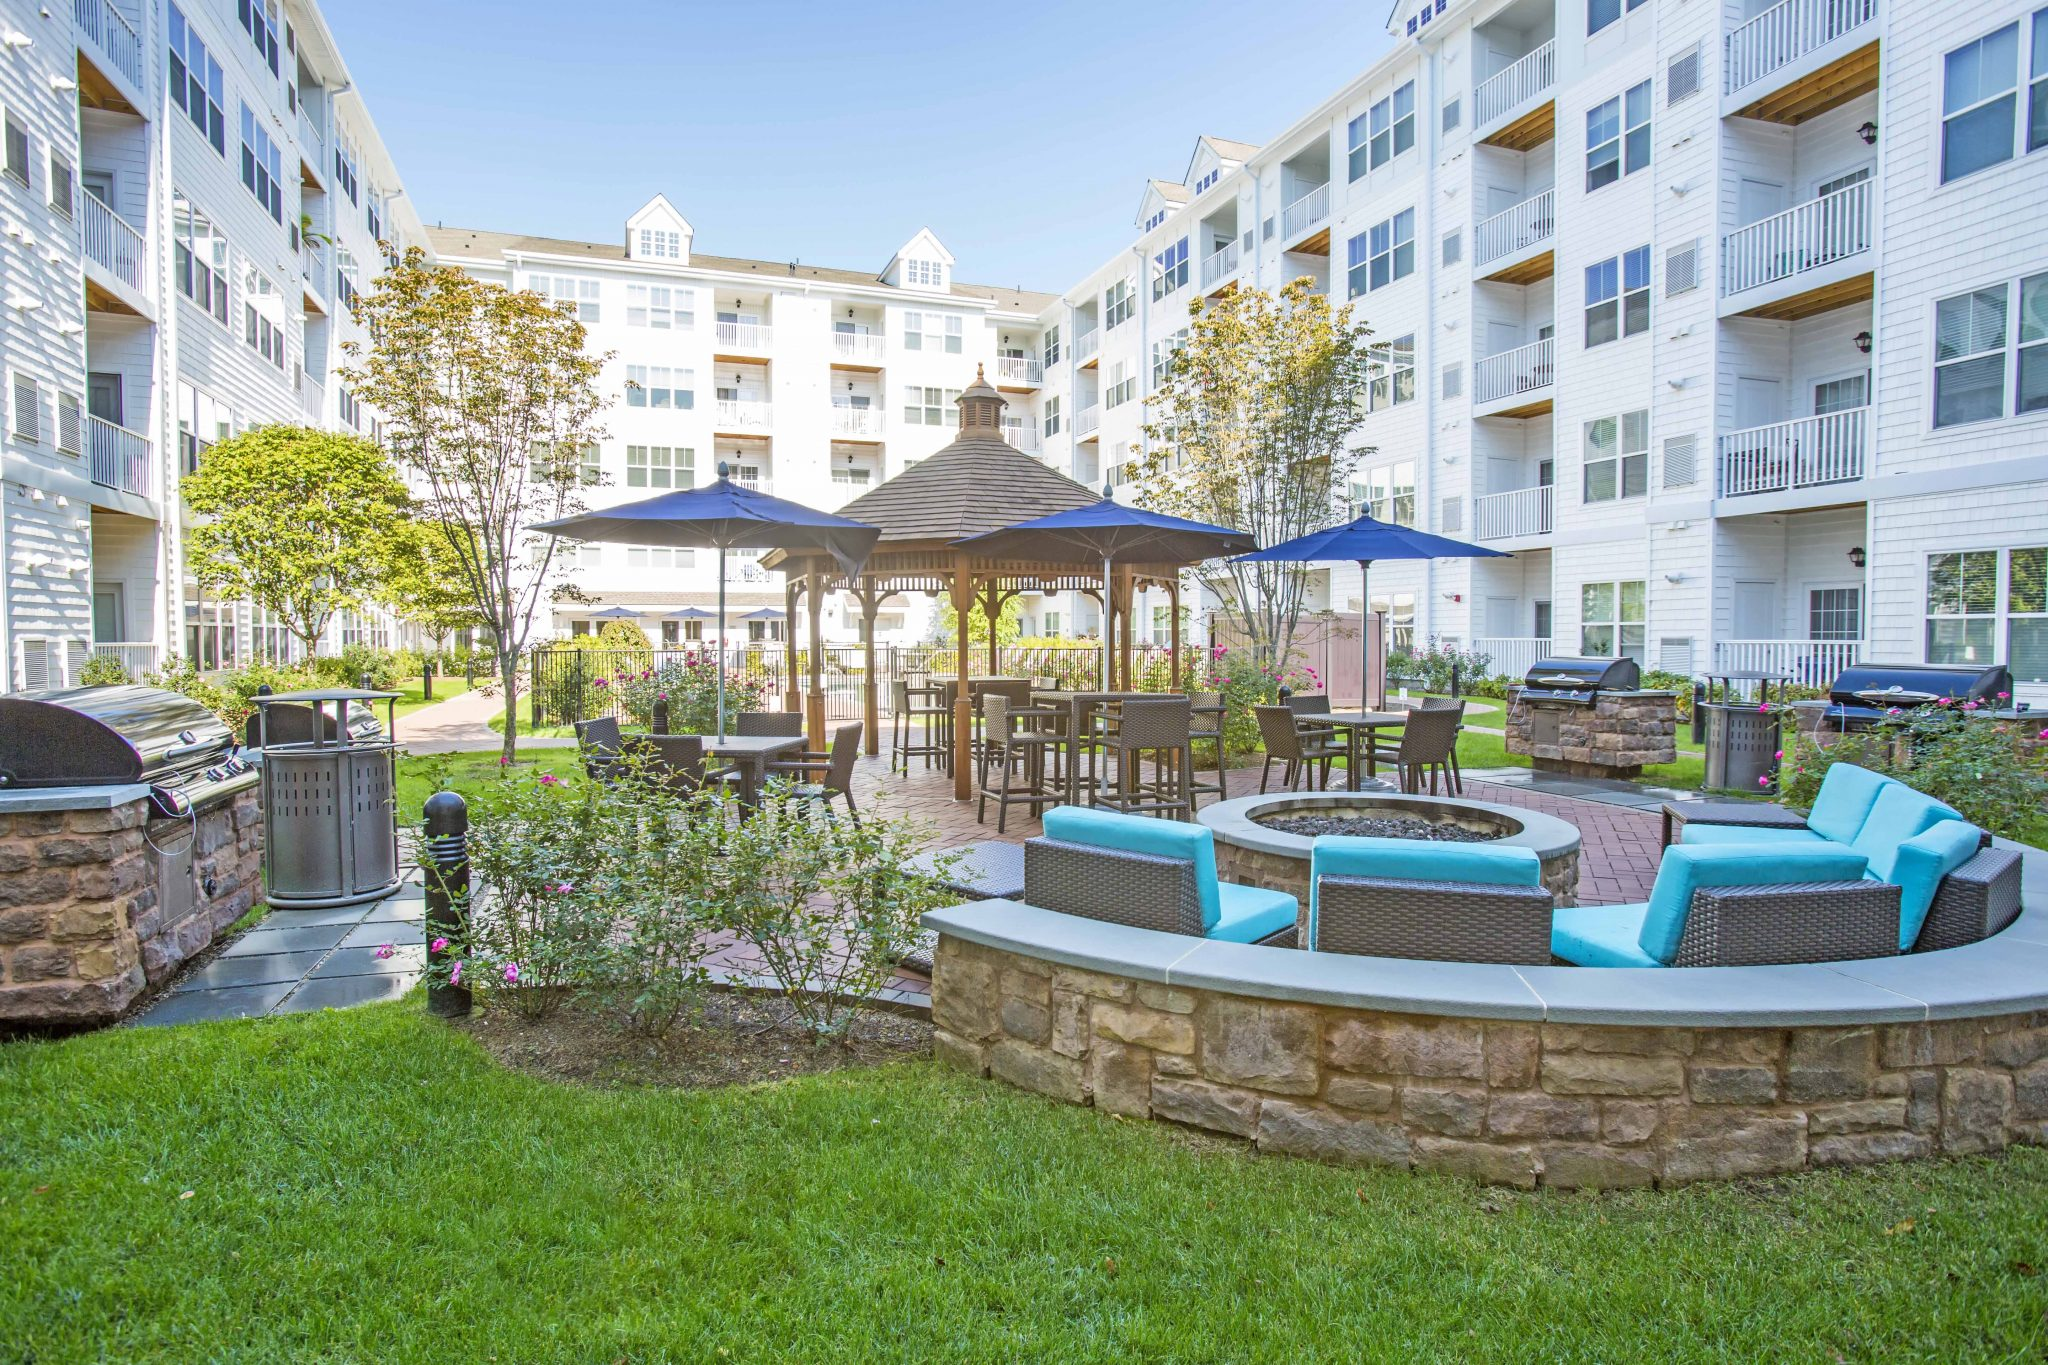 Exterior of courtyard between buildings with grass, seating around a fire pit, barbeques, and table seating.